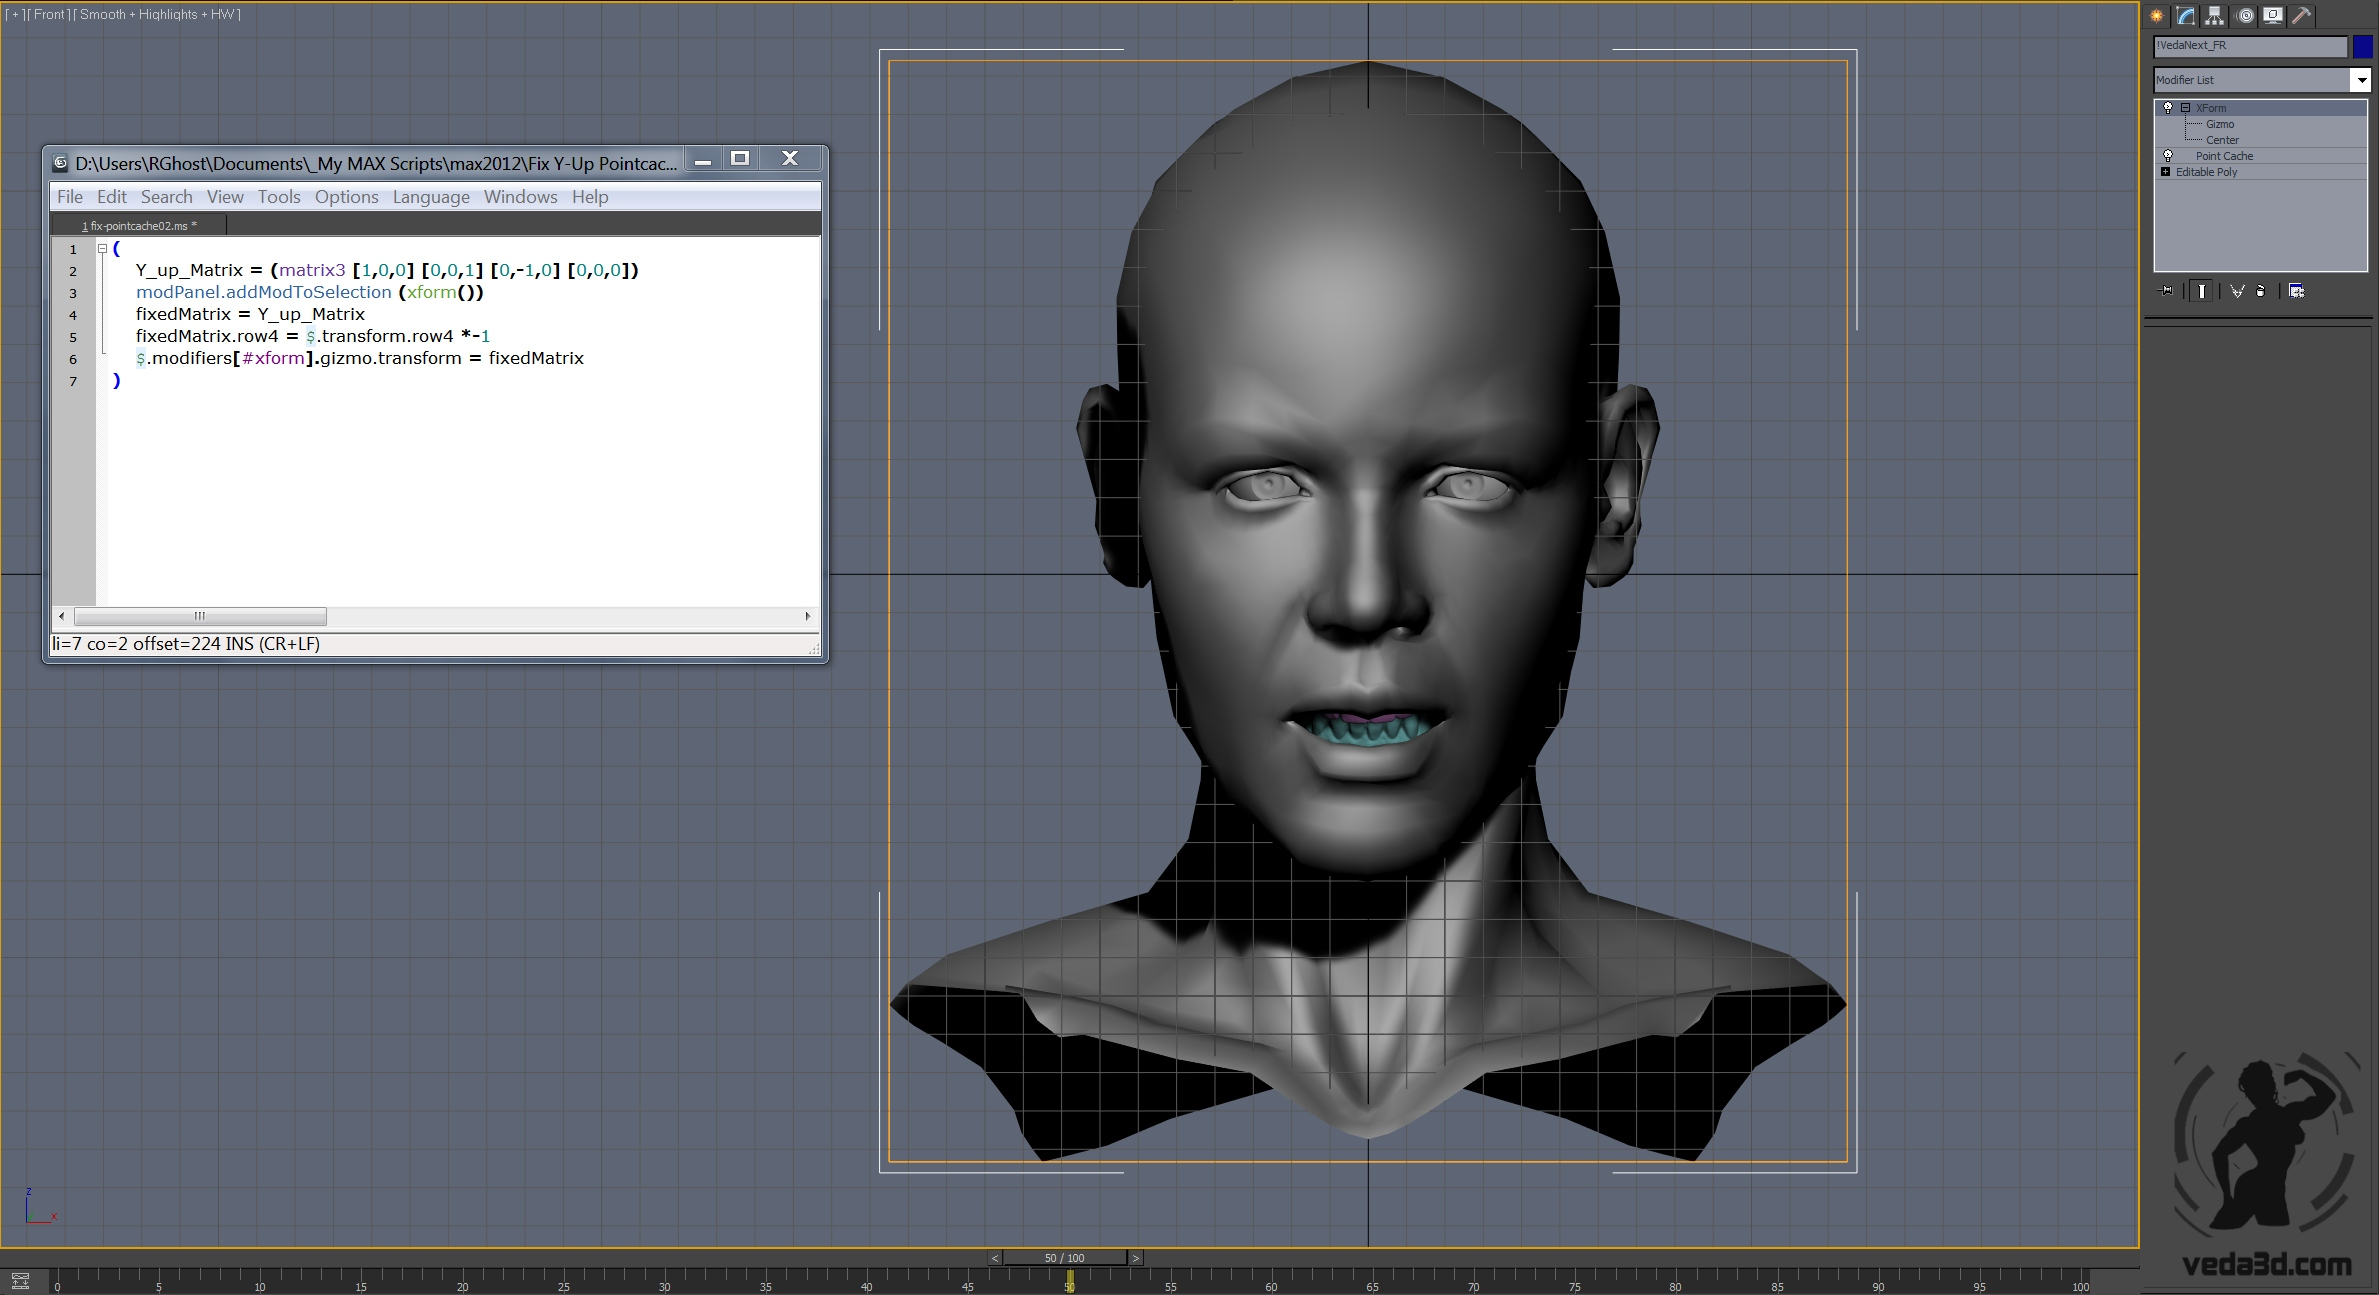 Fixed 3d model of the Veda's head after applied maxscript code snippet